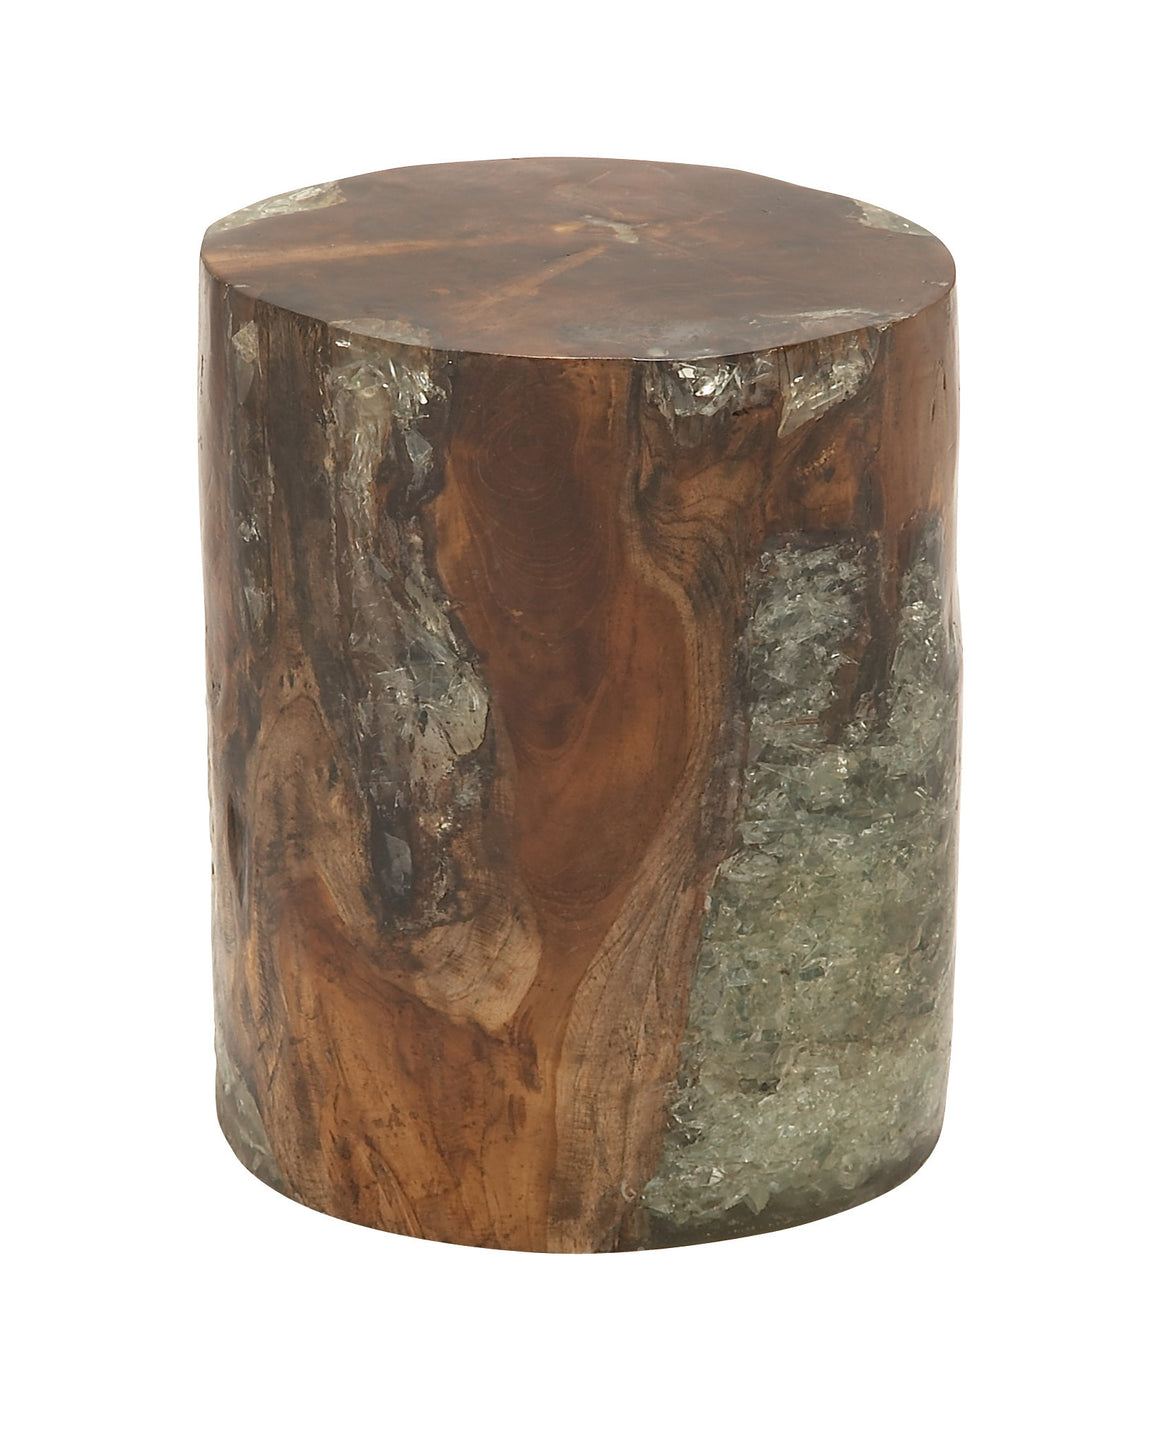 Natural Wood Teak Resin Foot Stool: Natural wood teak resin foot stool , Benzara Inc- grayburd